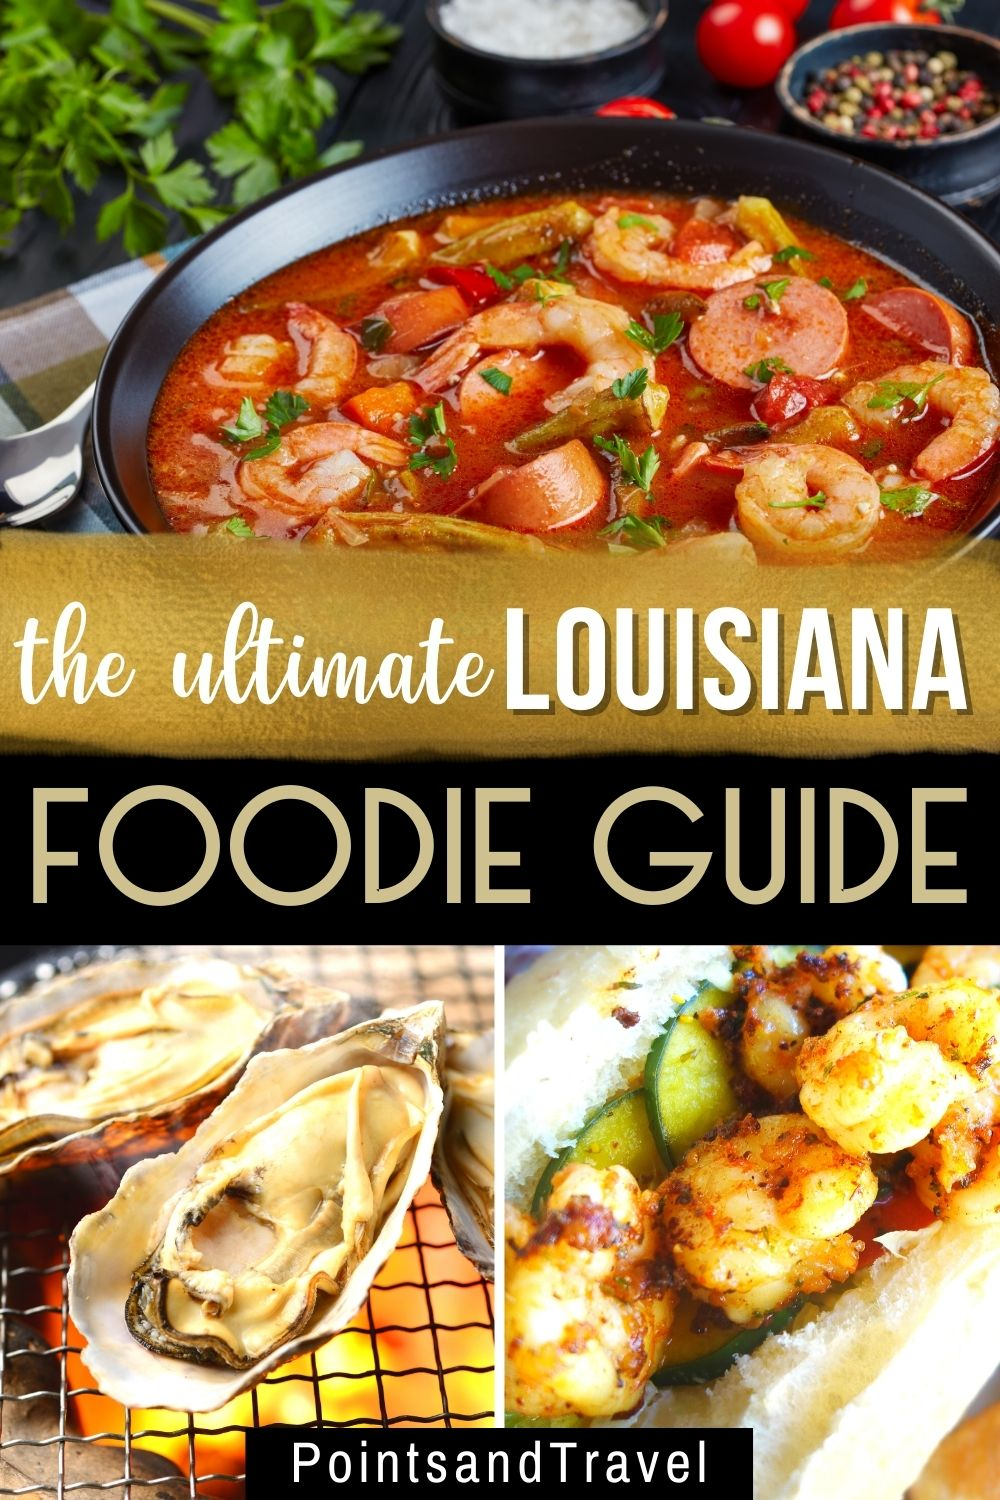 Foods of Louisiana, Louisiana cuisine, Louisiana dishes